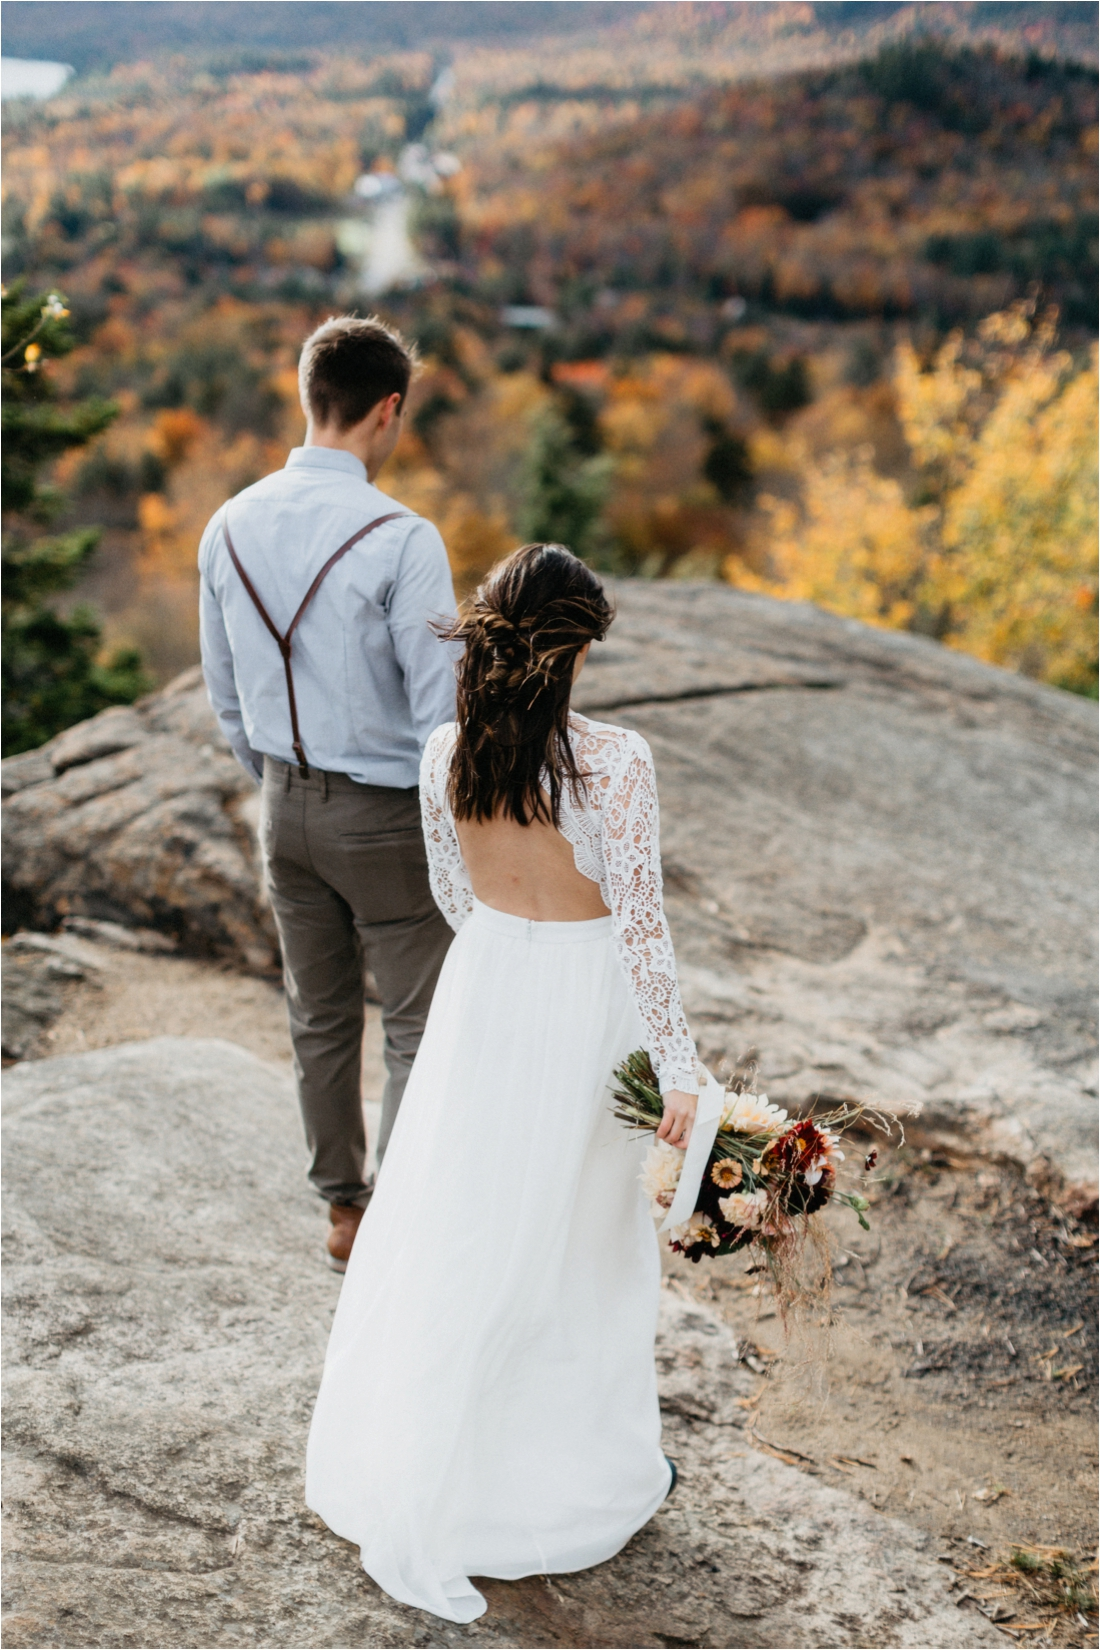 Elopement on Rocky Mountain near Inlet, Adirondacks | Shaw Photo Co. | Adirondack Wedding Photographer